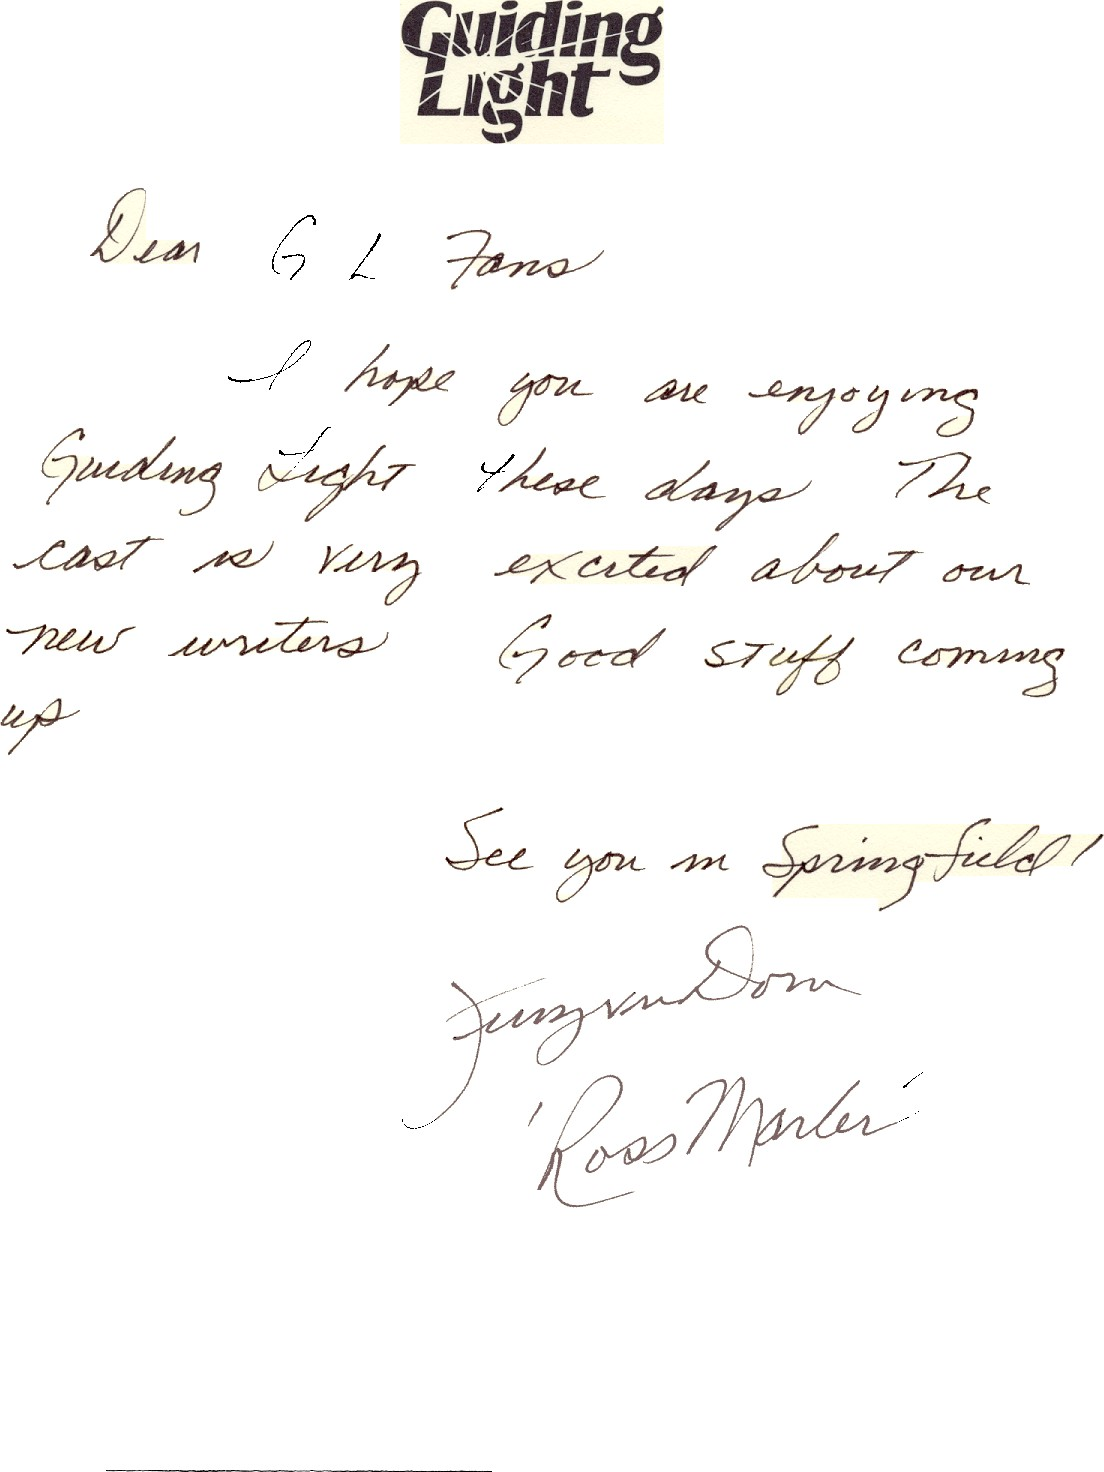 Jerry ver Dorn sends SPRINGFIELD a letter!